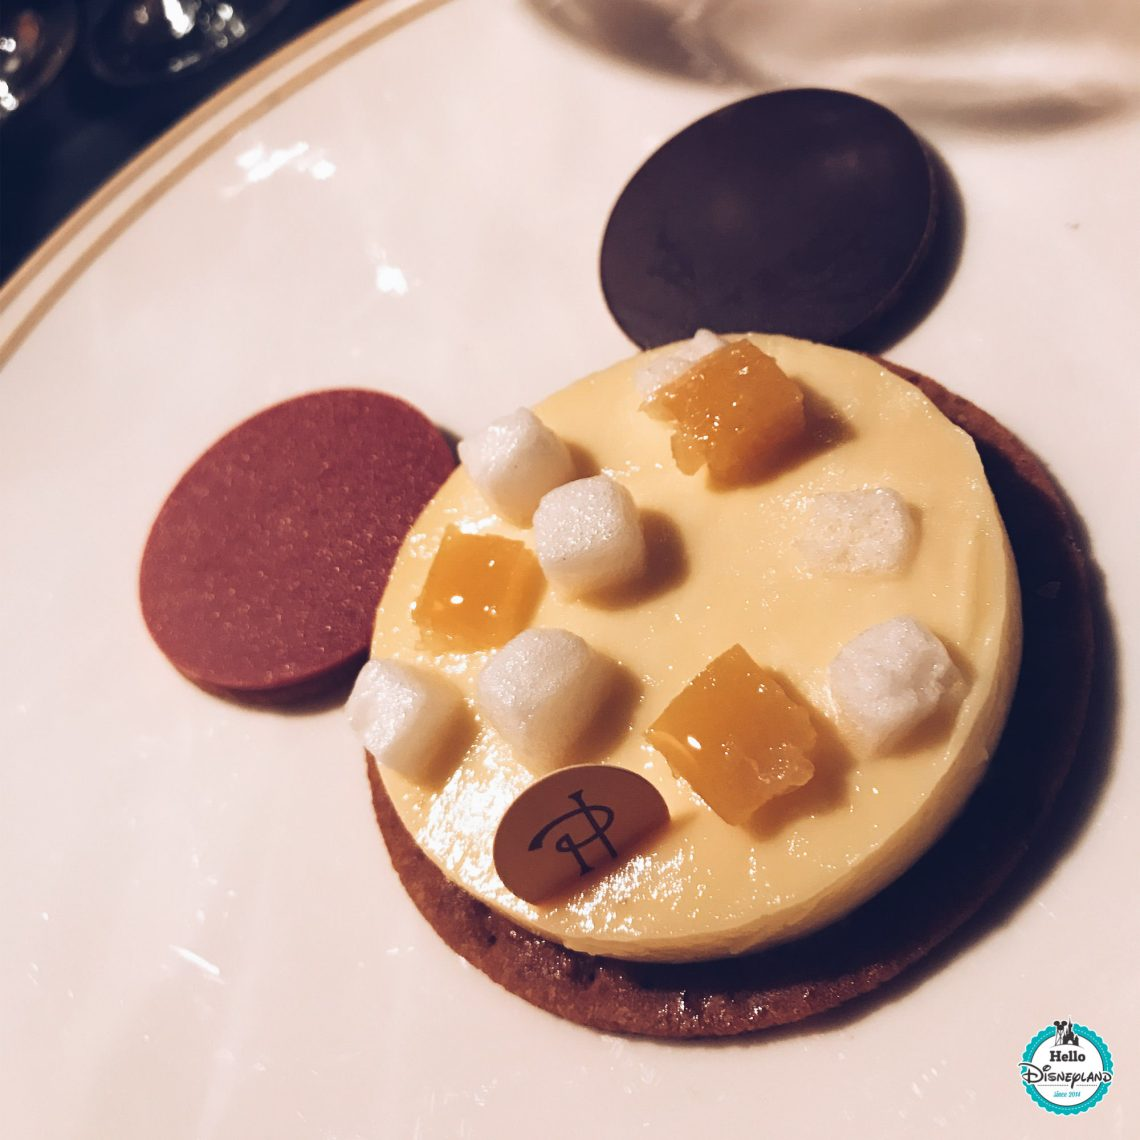 Que mange-t-on à Disneyland Paris - Disneyland Paris best food